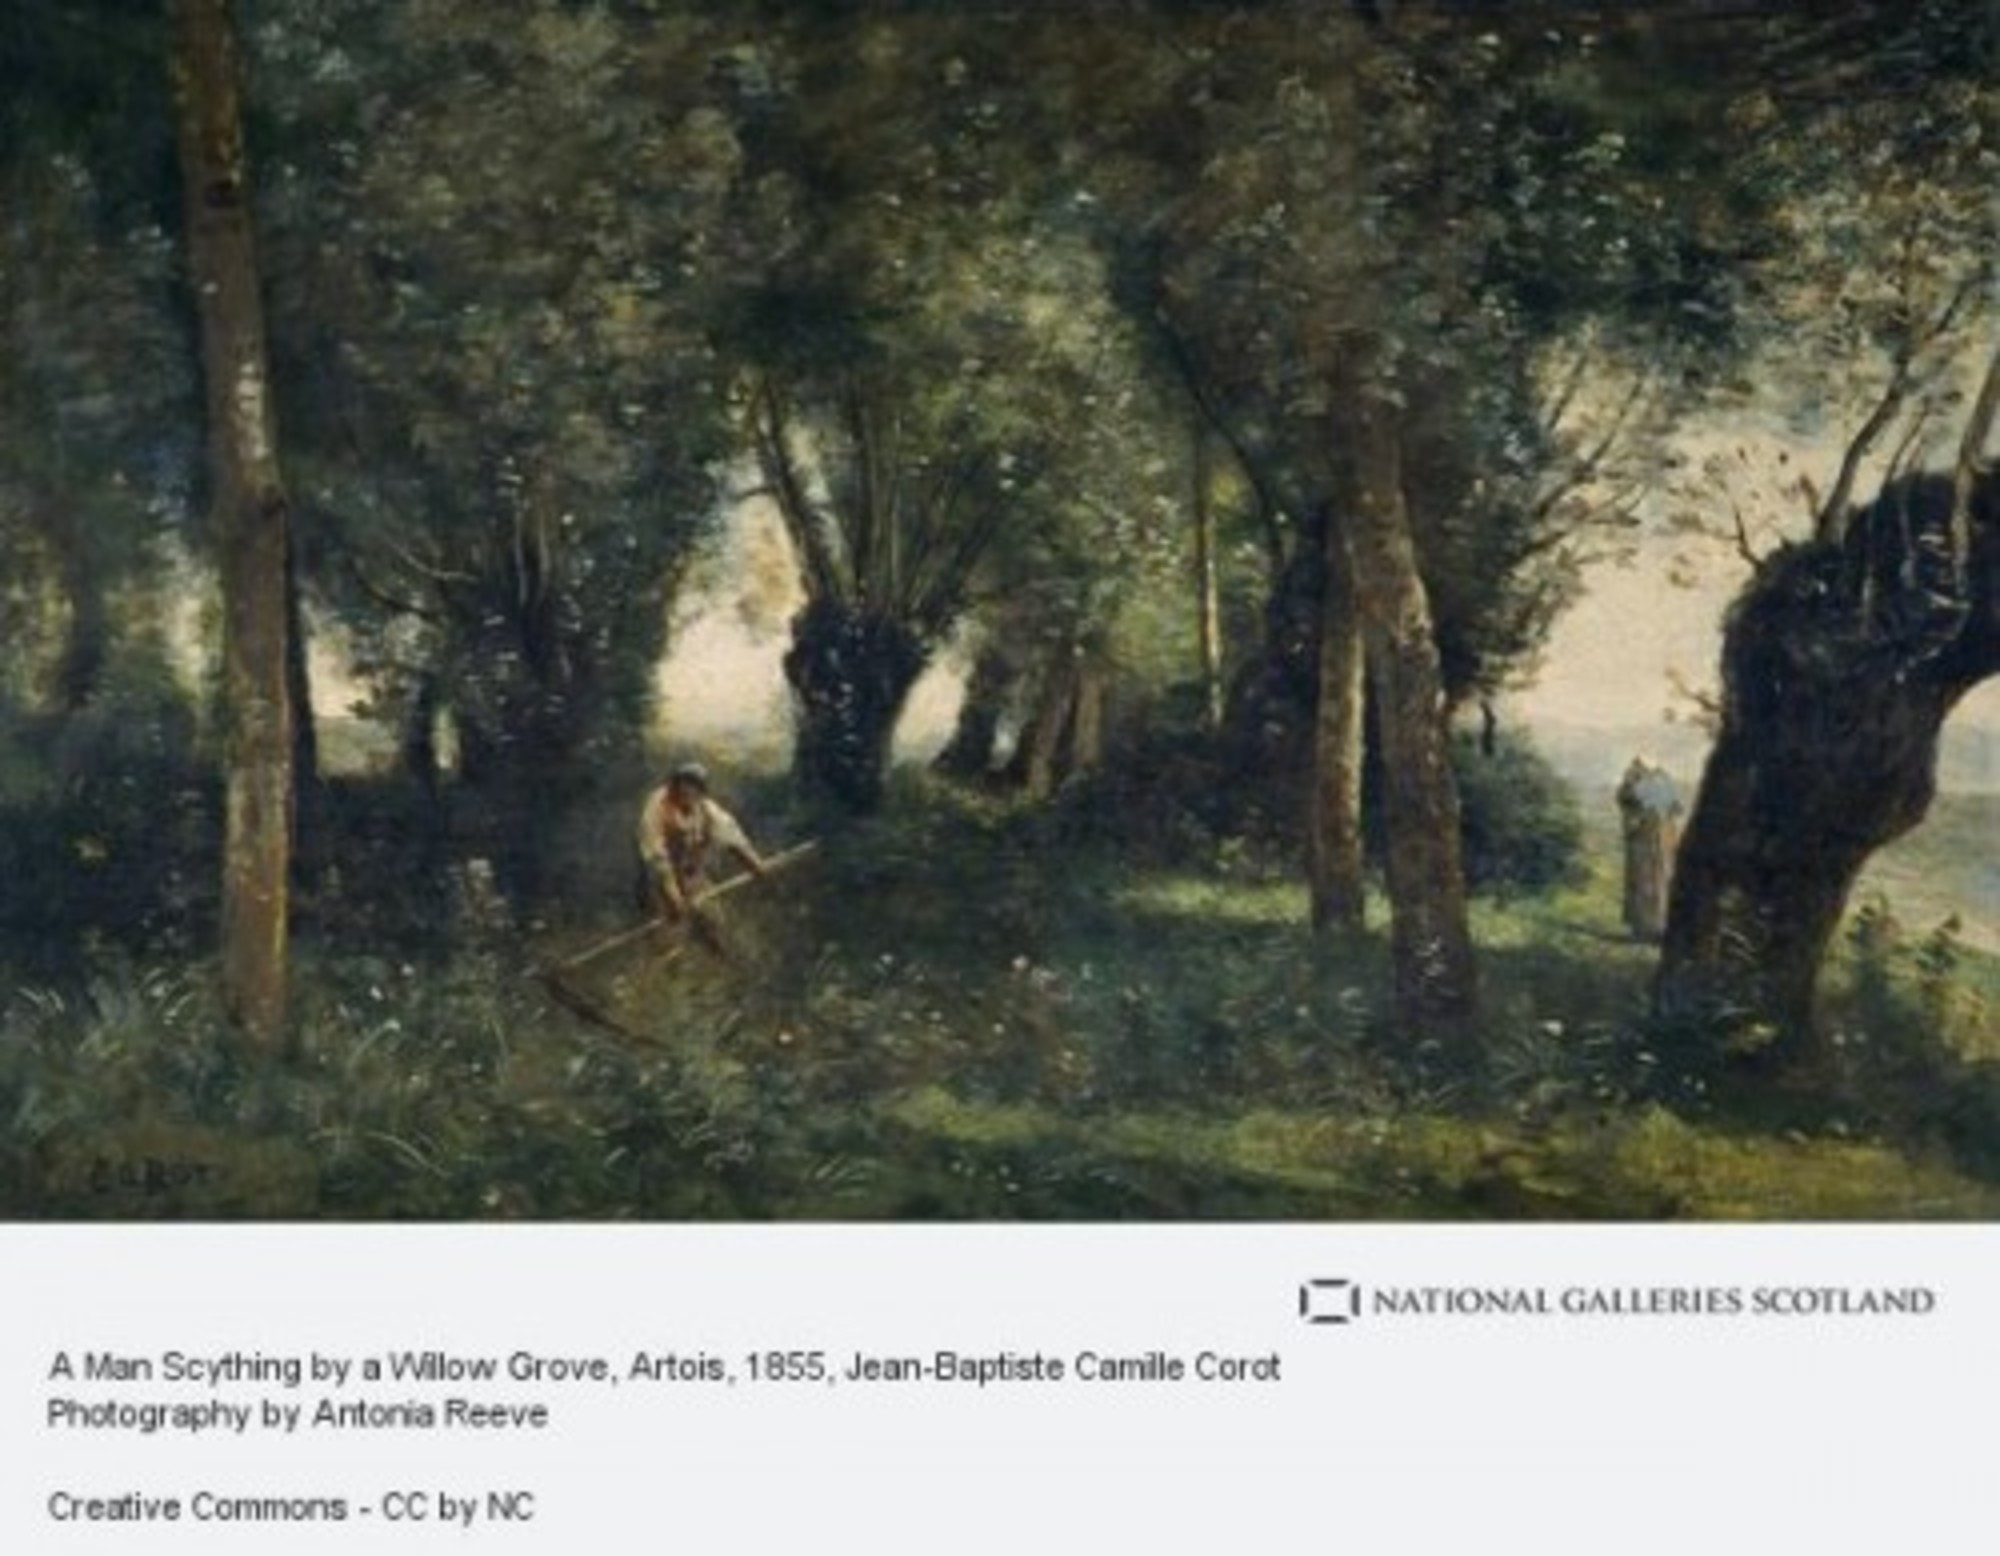 Corot---A-Man-Scything-by-a-Willow-Grove-Artois-about-1855---1860.jpg